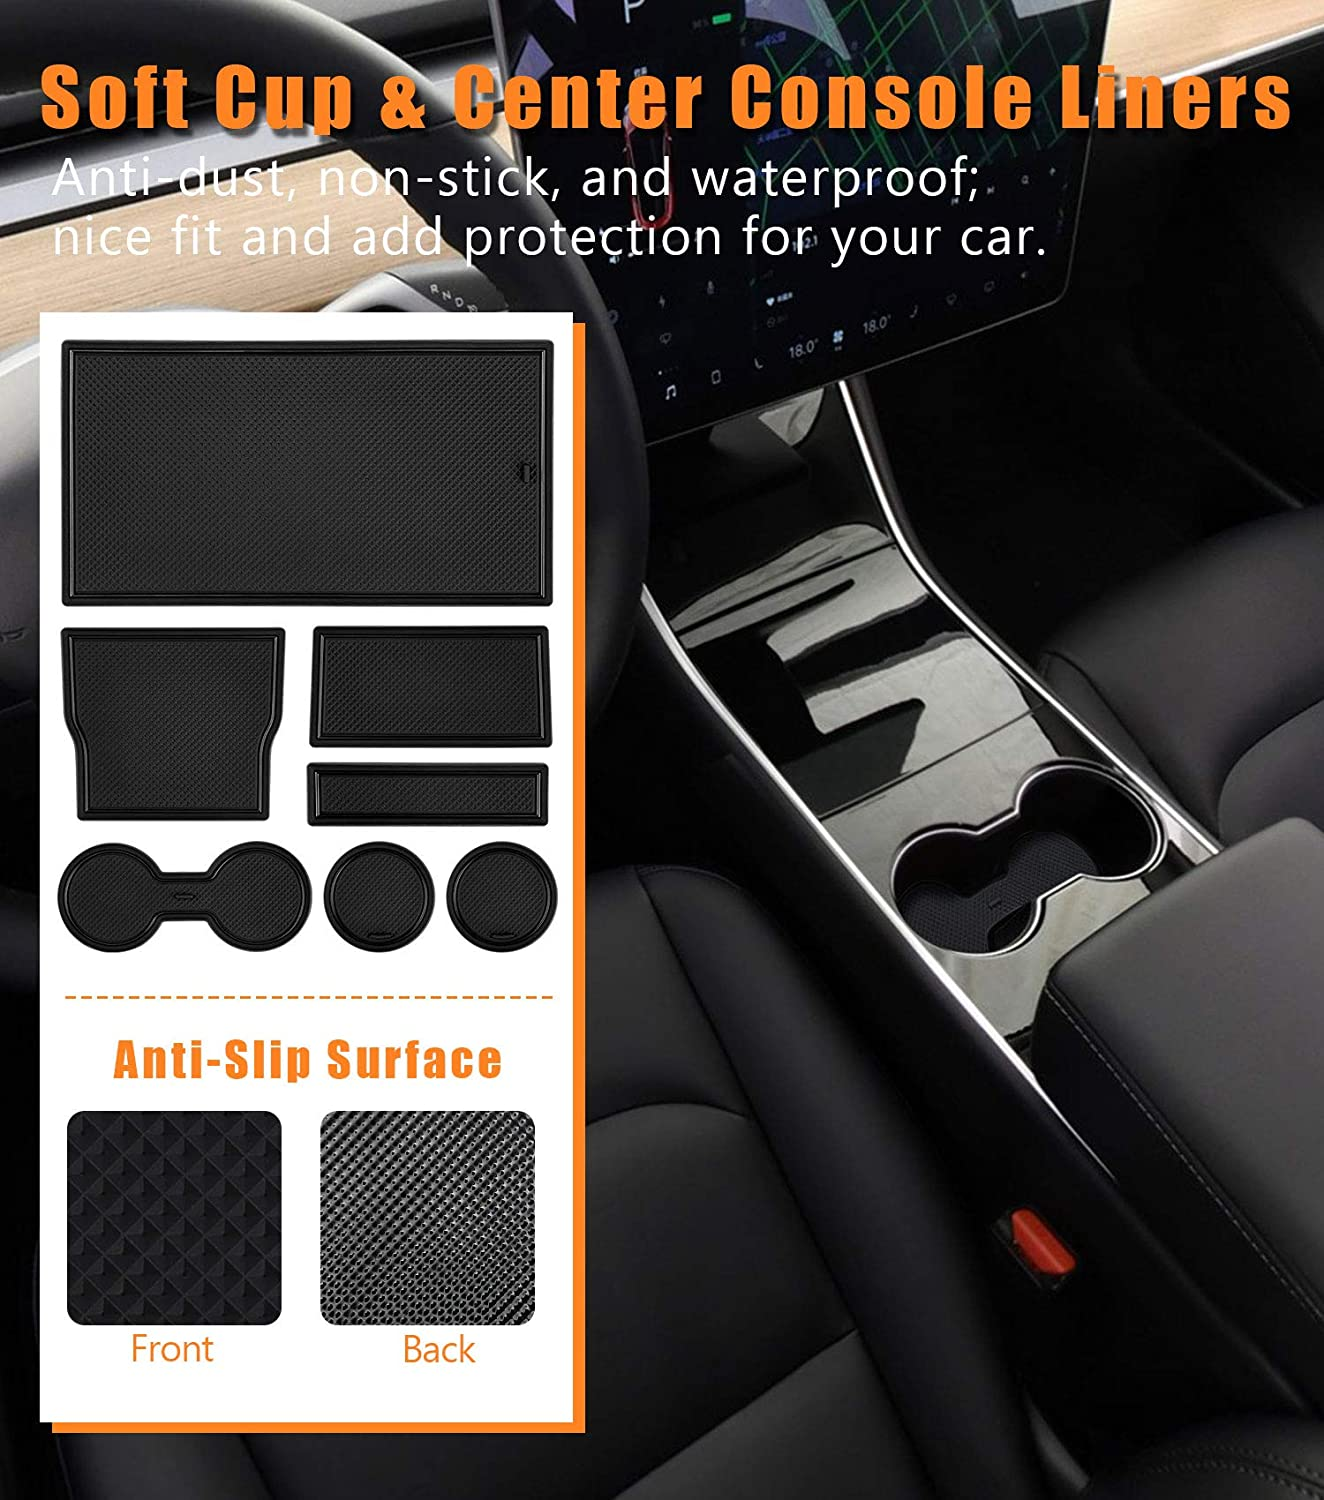 2012 Vanku Car Floor Mats Fit Jeep Grand Cherokee 2011 2013 2014 Free Brush Included 2015 All Weather Floor Liners Full Set 5 Pieces Heavy Duty Truck Mats